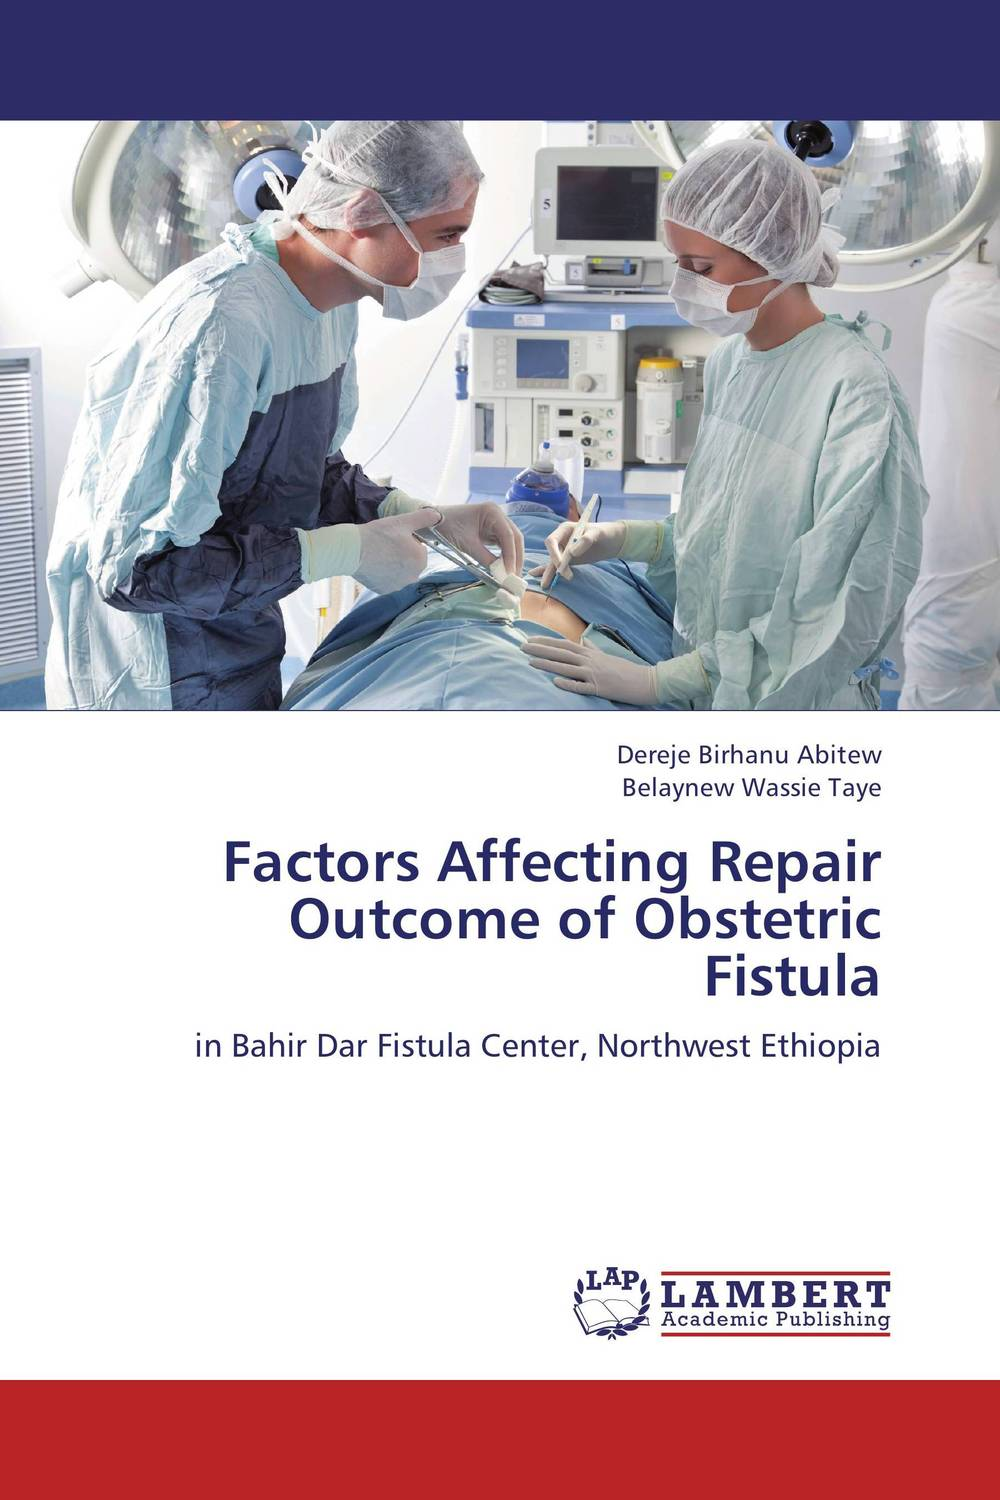 Фото Factors Affecting Repair Outcome of Obstetric Fistula ethnic interaction the case of oromo and amhara in western ethiopia